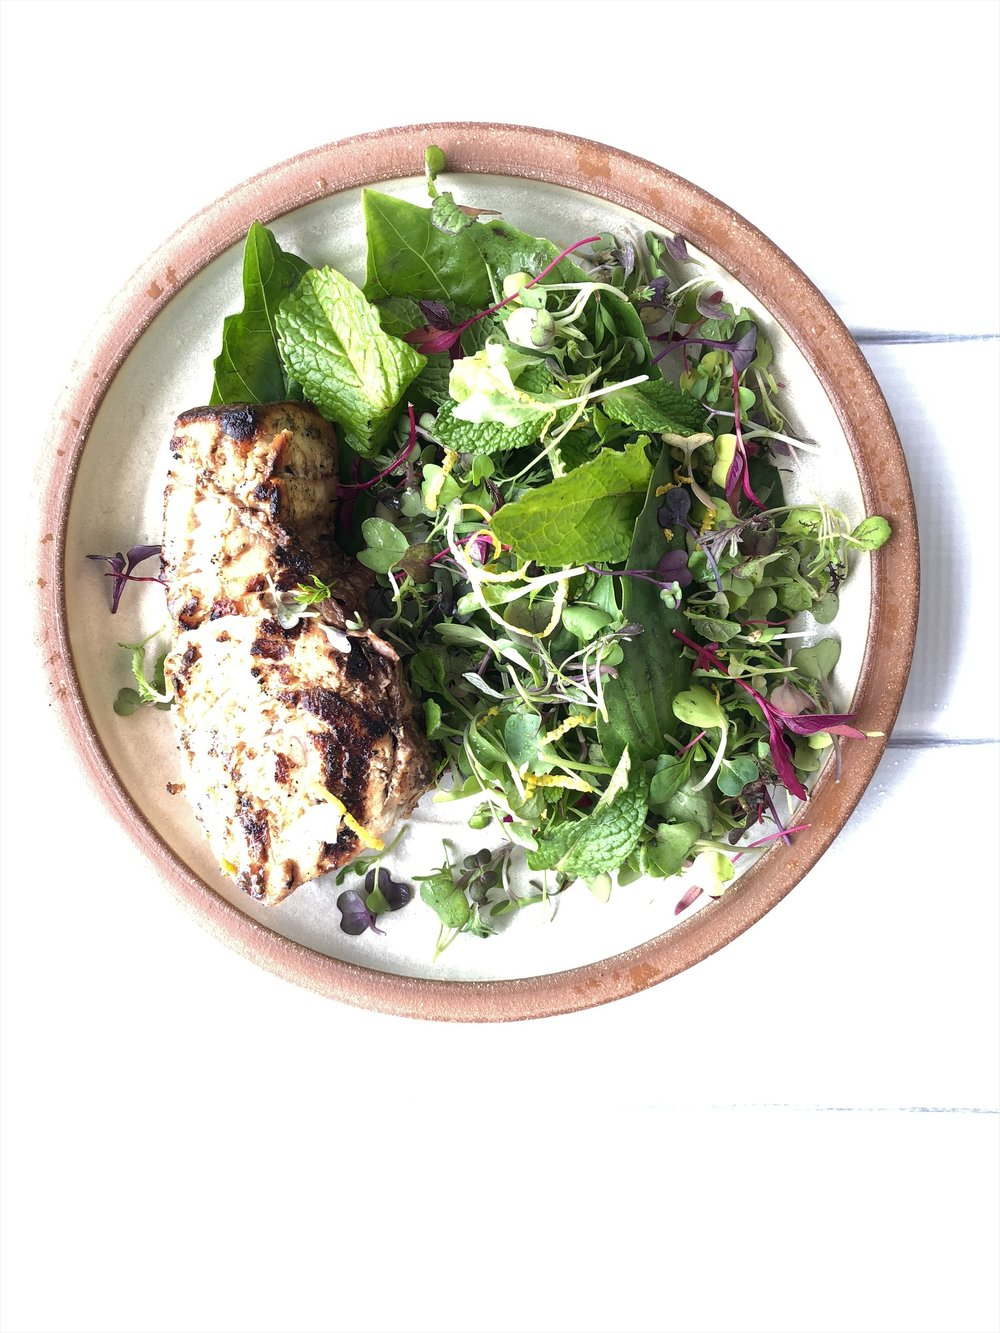 Grilled Swordfish with Herb Salad